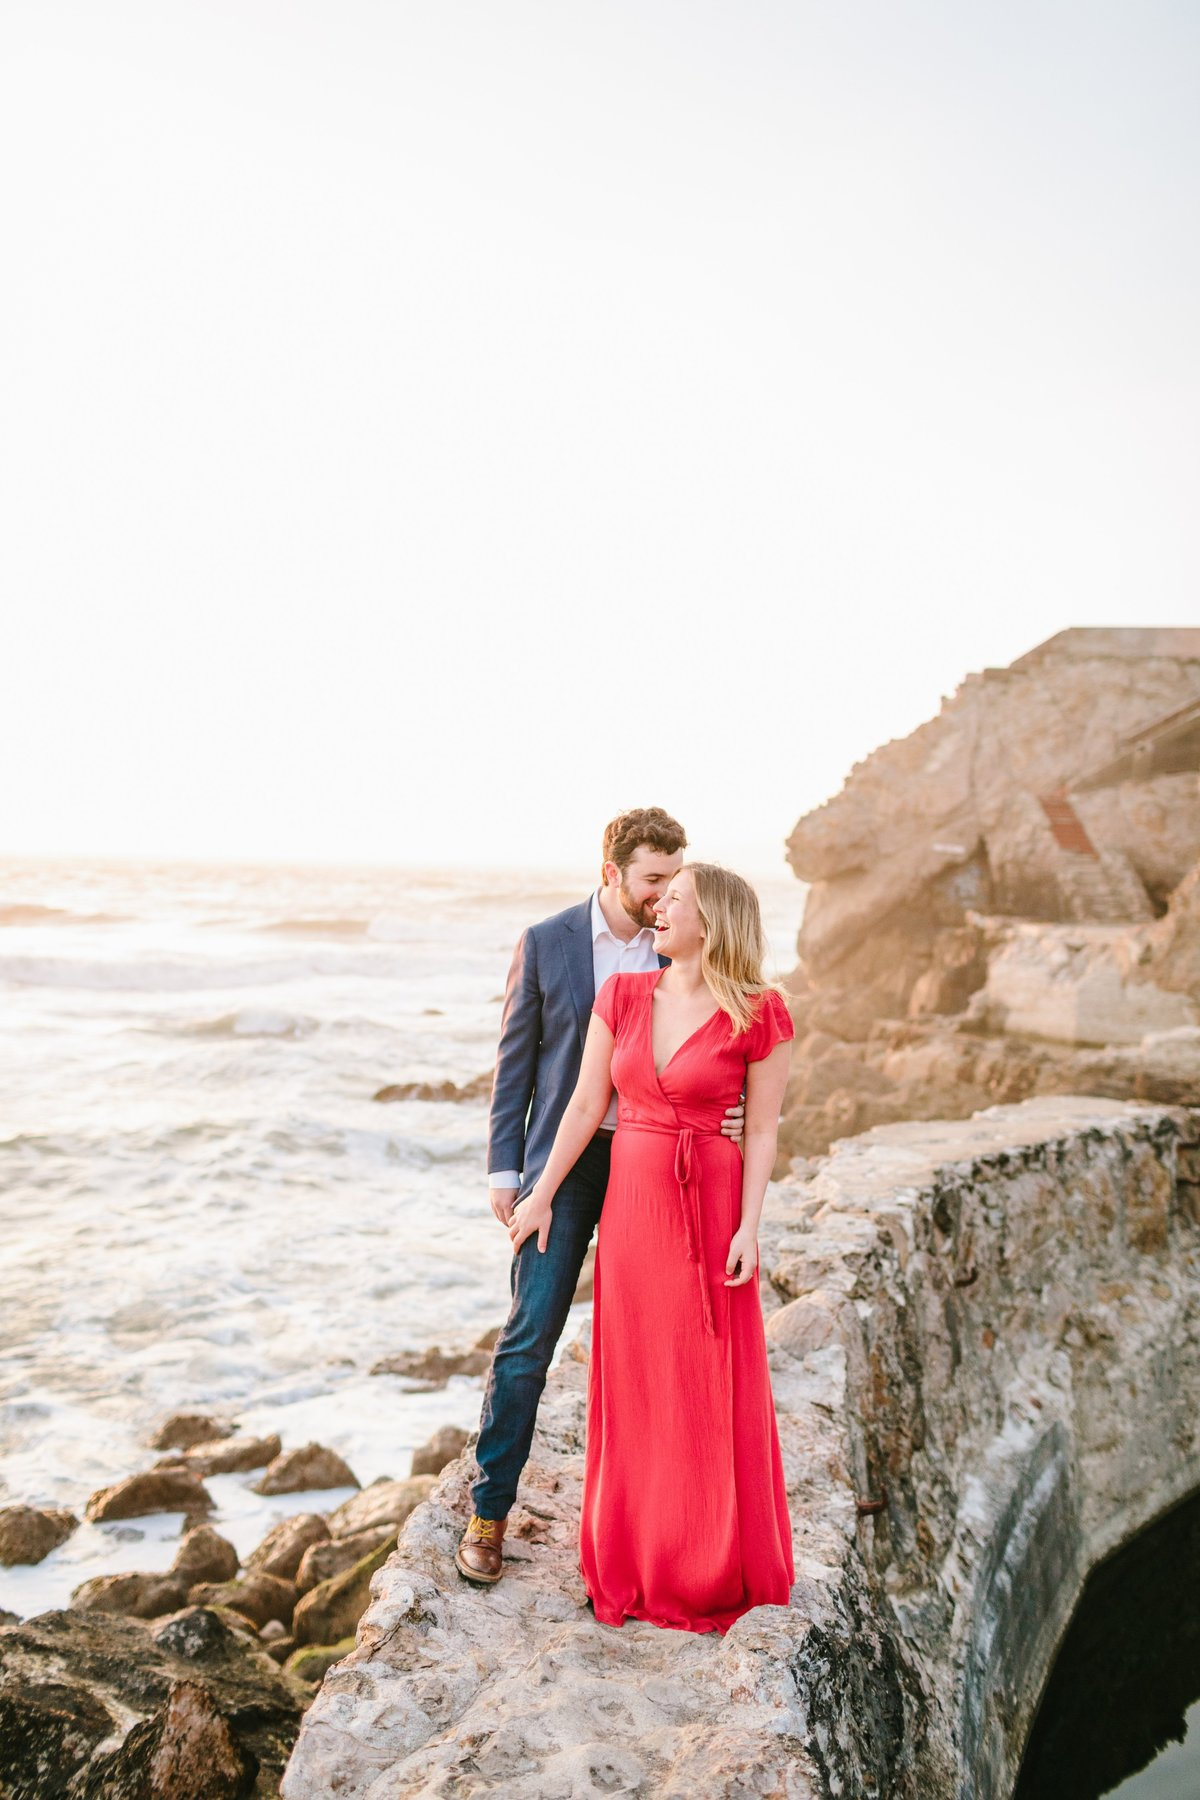 Best California Engagement Photographer-Jodee Debes Photography-90